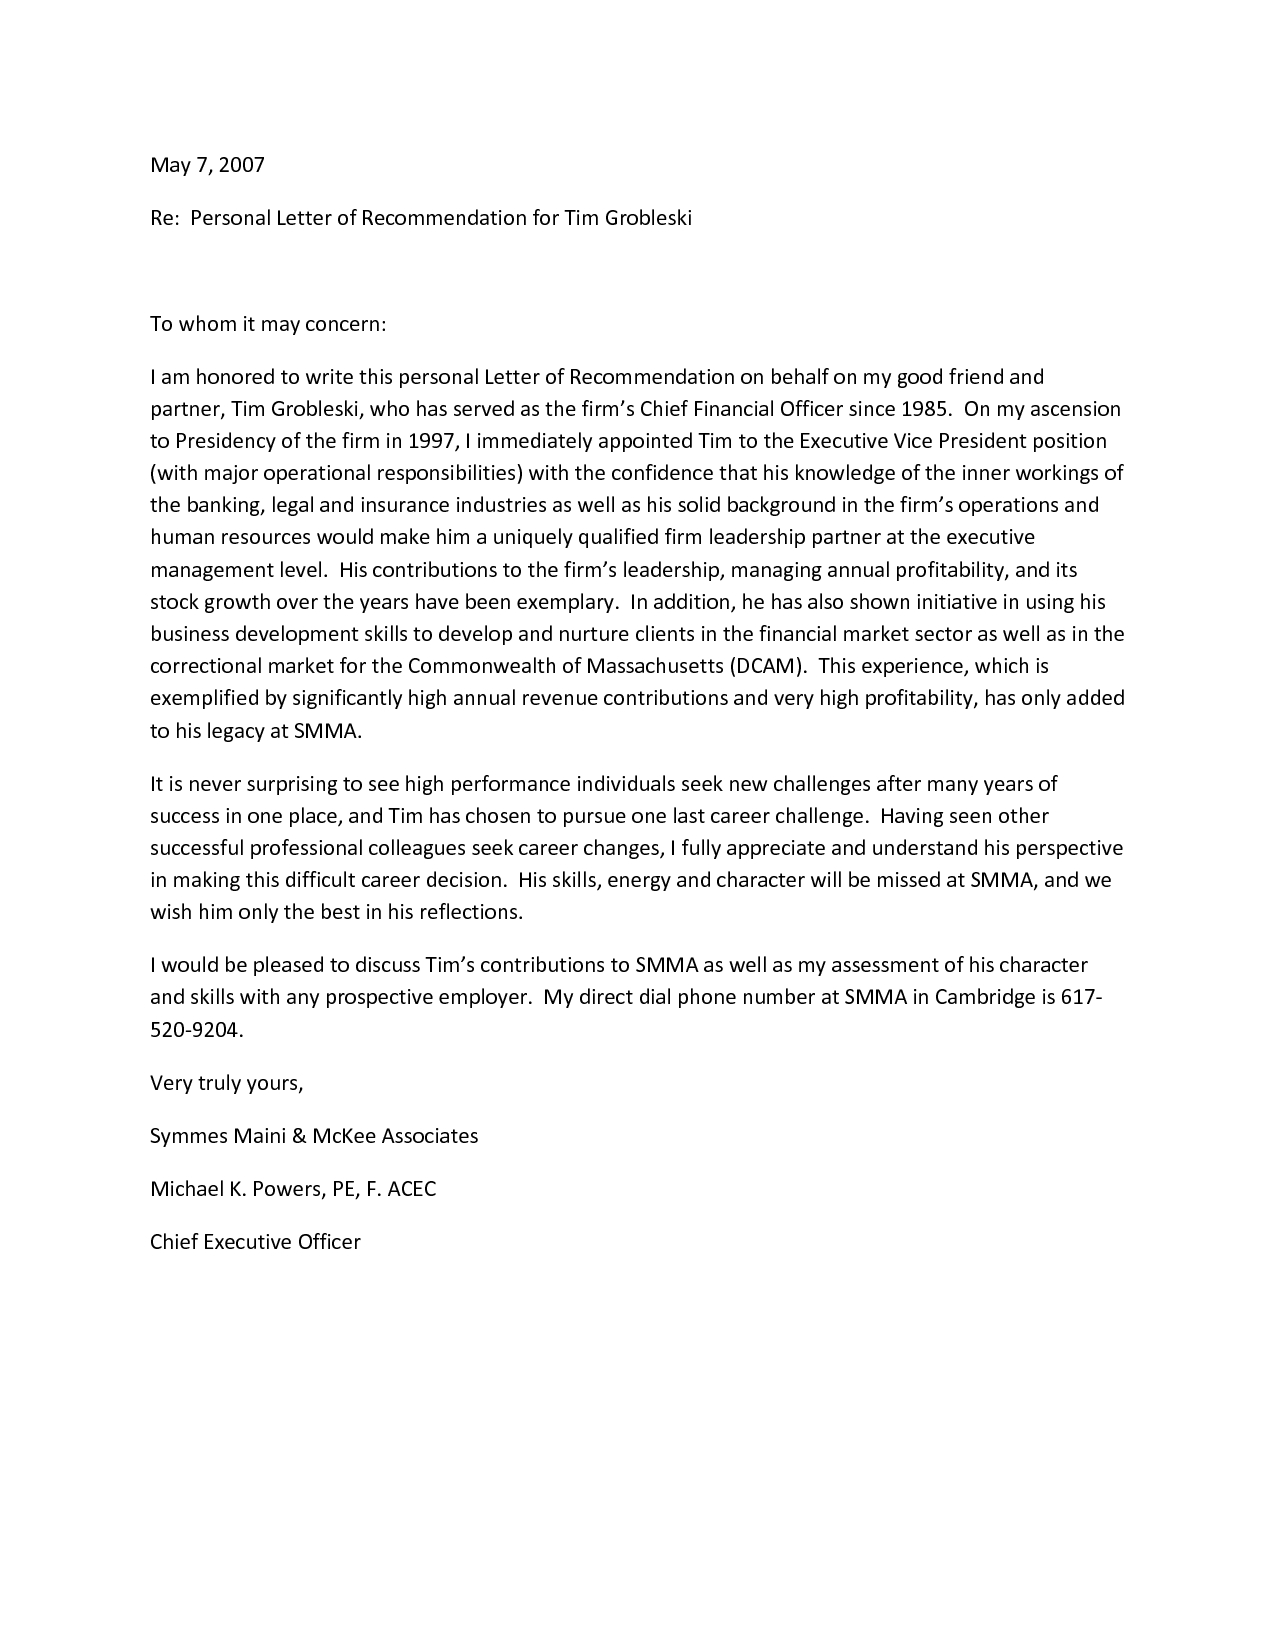 Personal Reference Letter for A Friend Template - Simple Reference Letter for A Friend Letter format formal